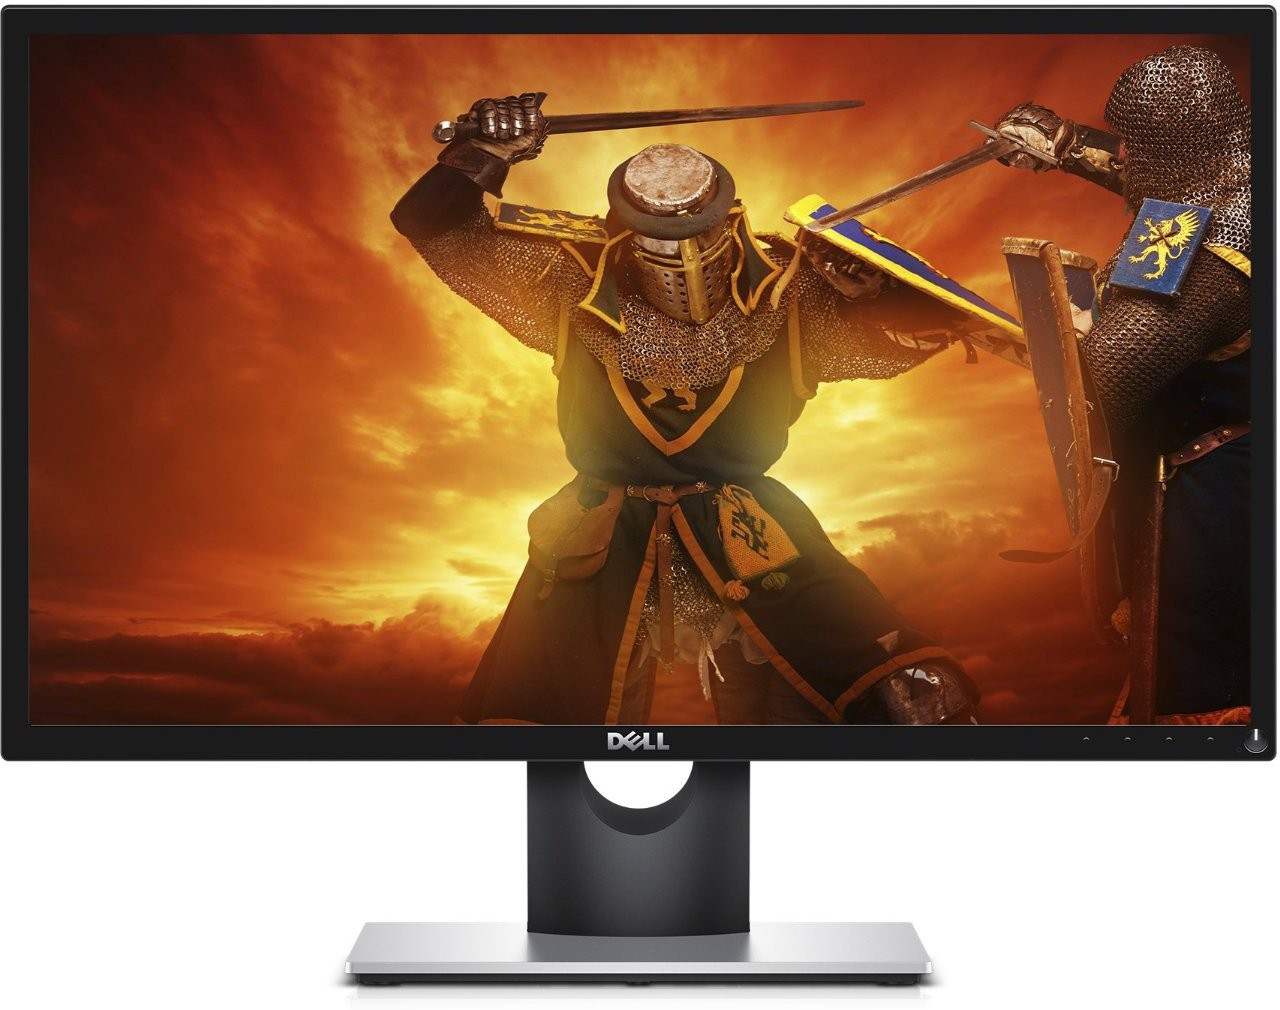 Deals - Gurgaon - Dell | Samsung <br> LED | LCD<br> Category - computers<br> Business - Flipkart.com